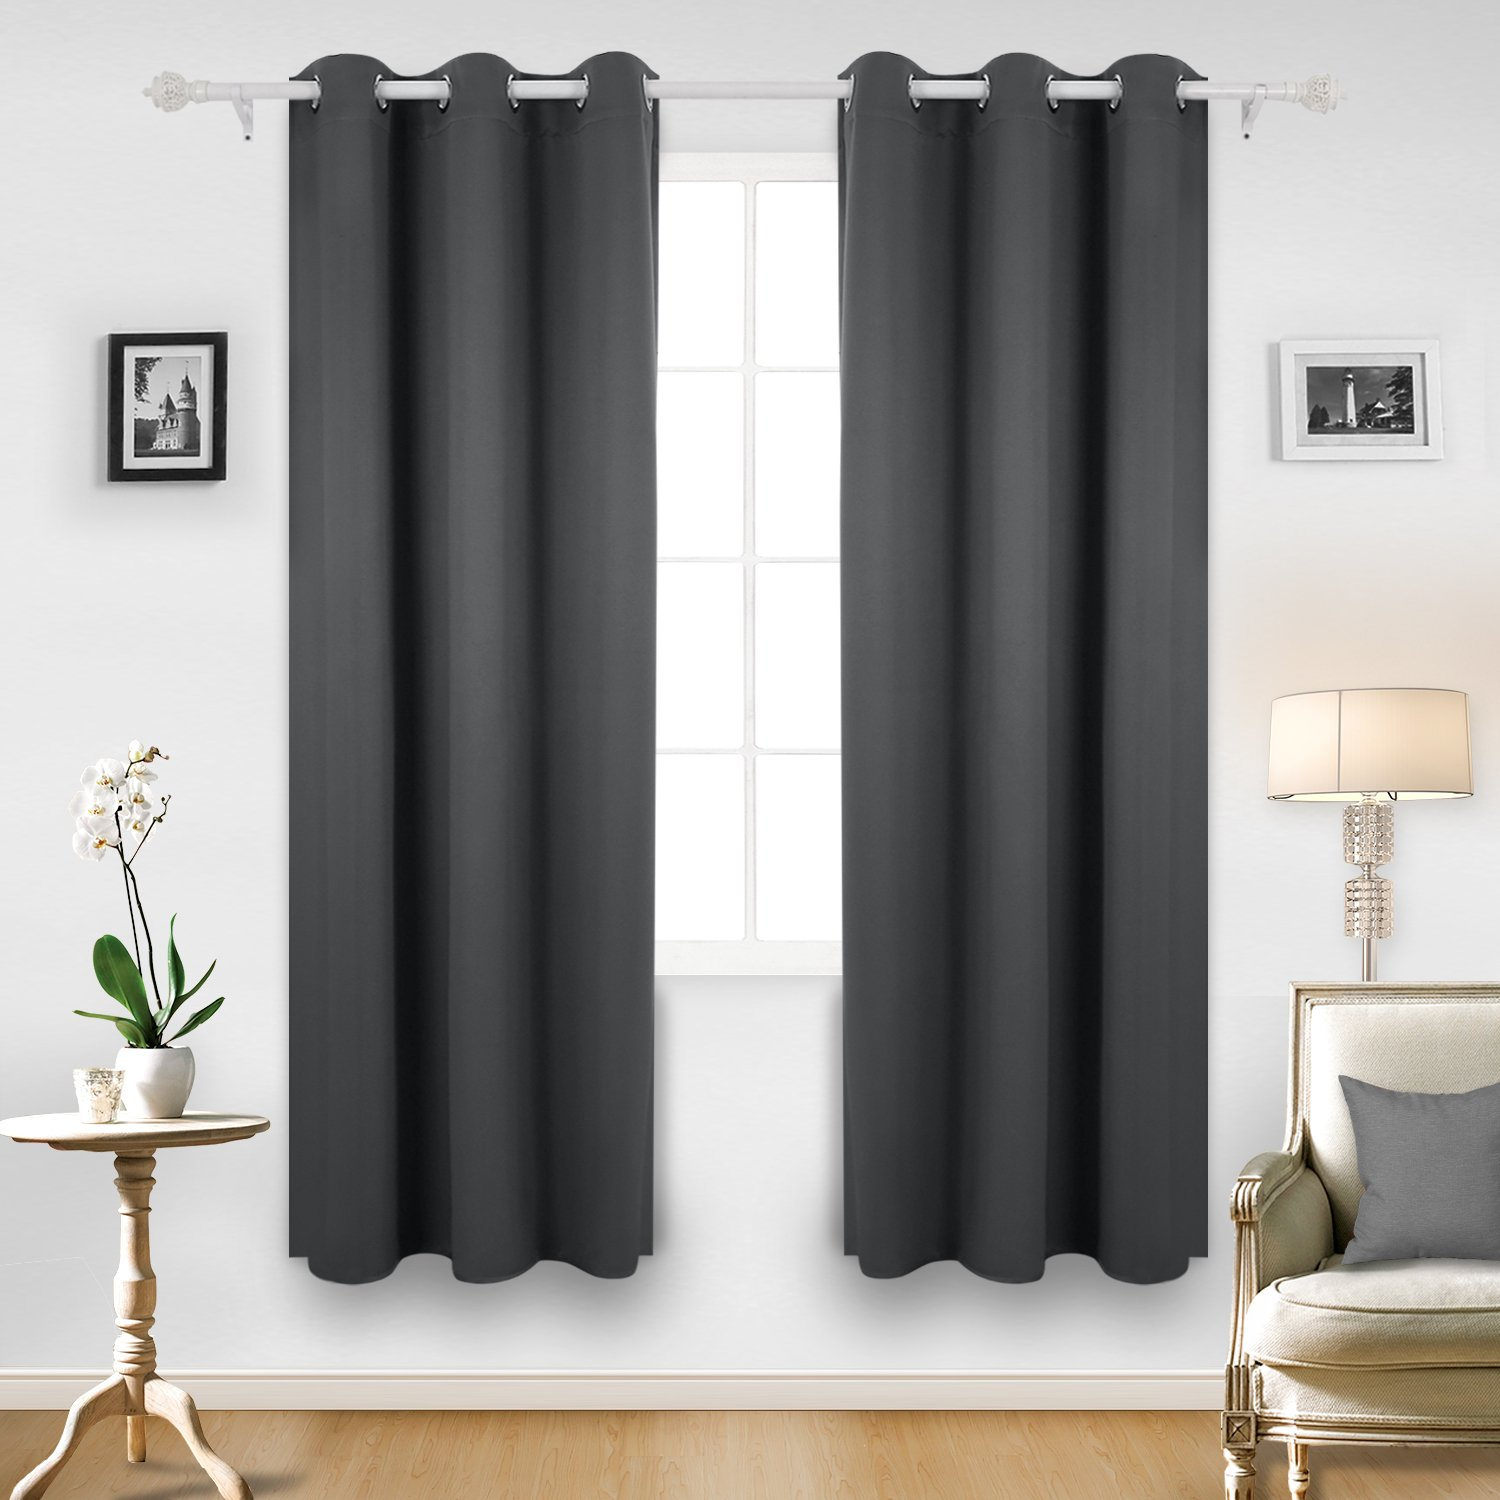 noise cancelling windows aluminum noise cancelling window curtains 84 inch length reducing light blocking sun 42